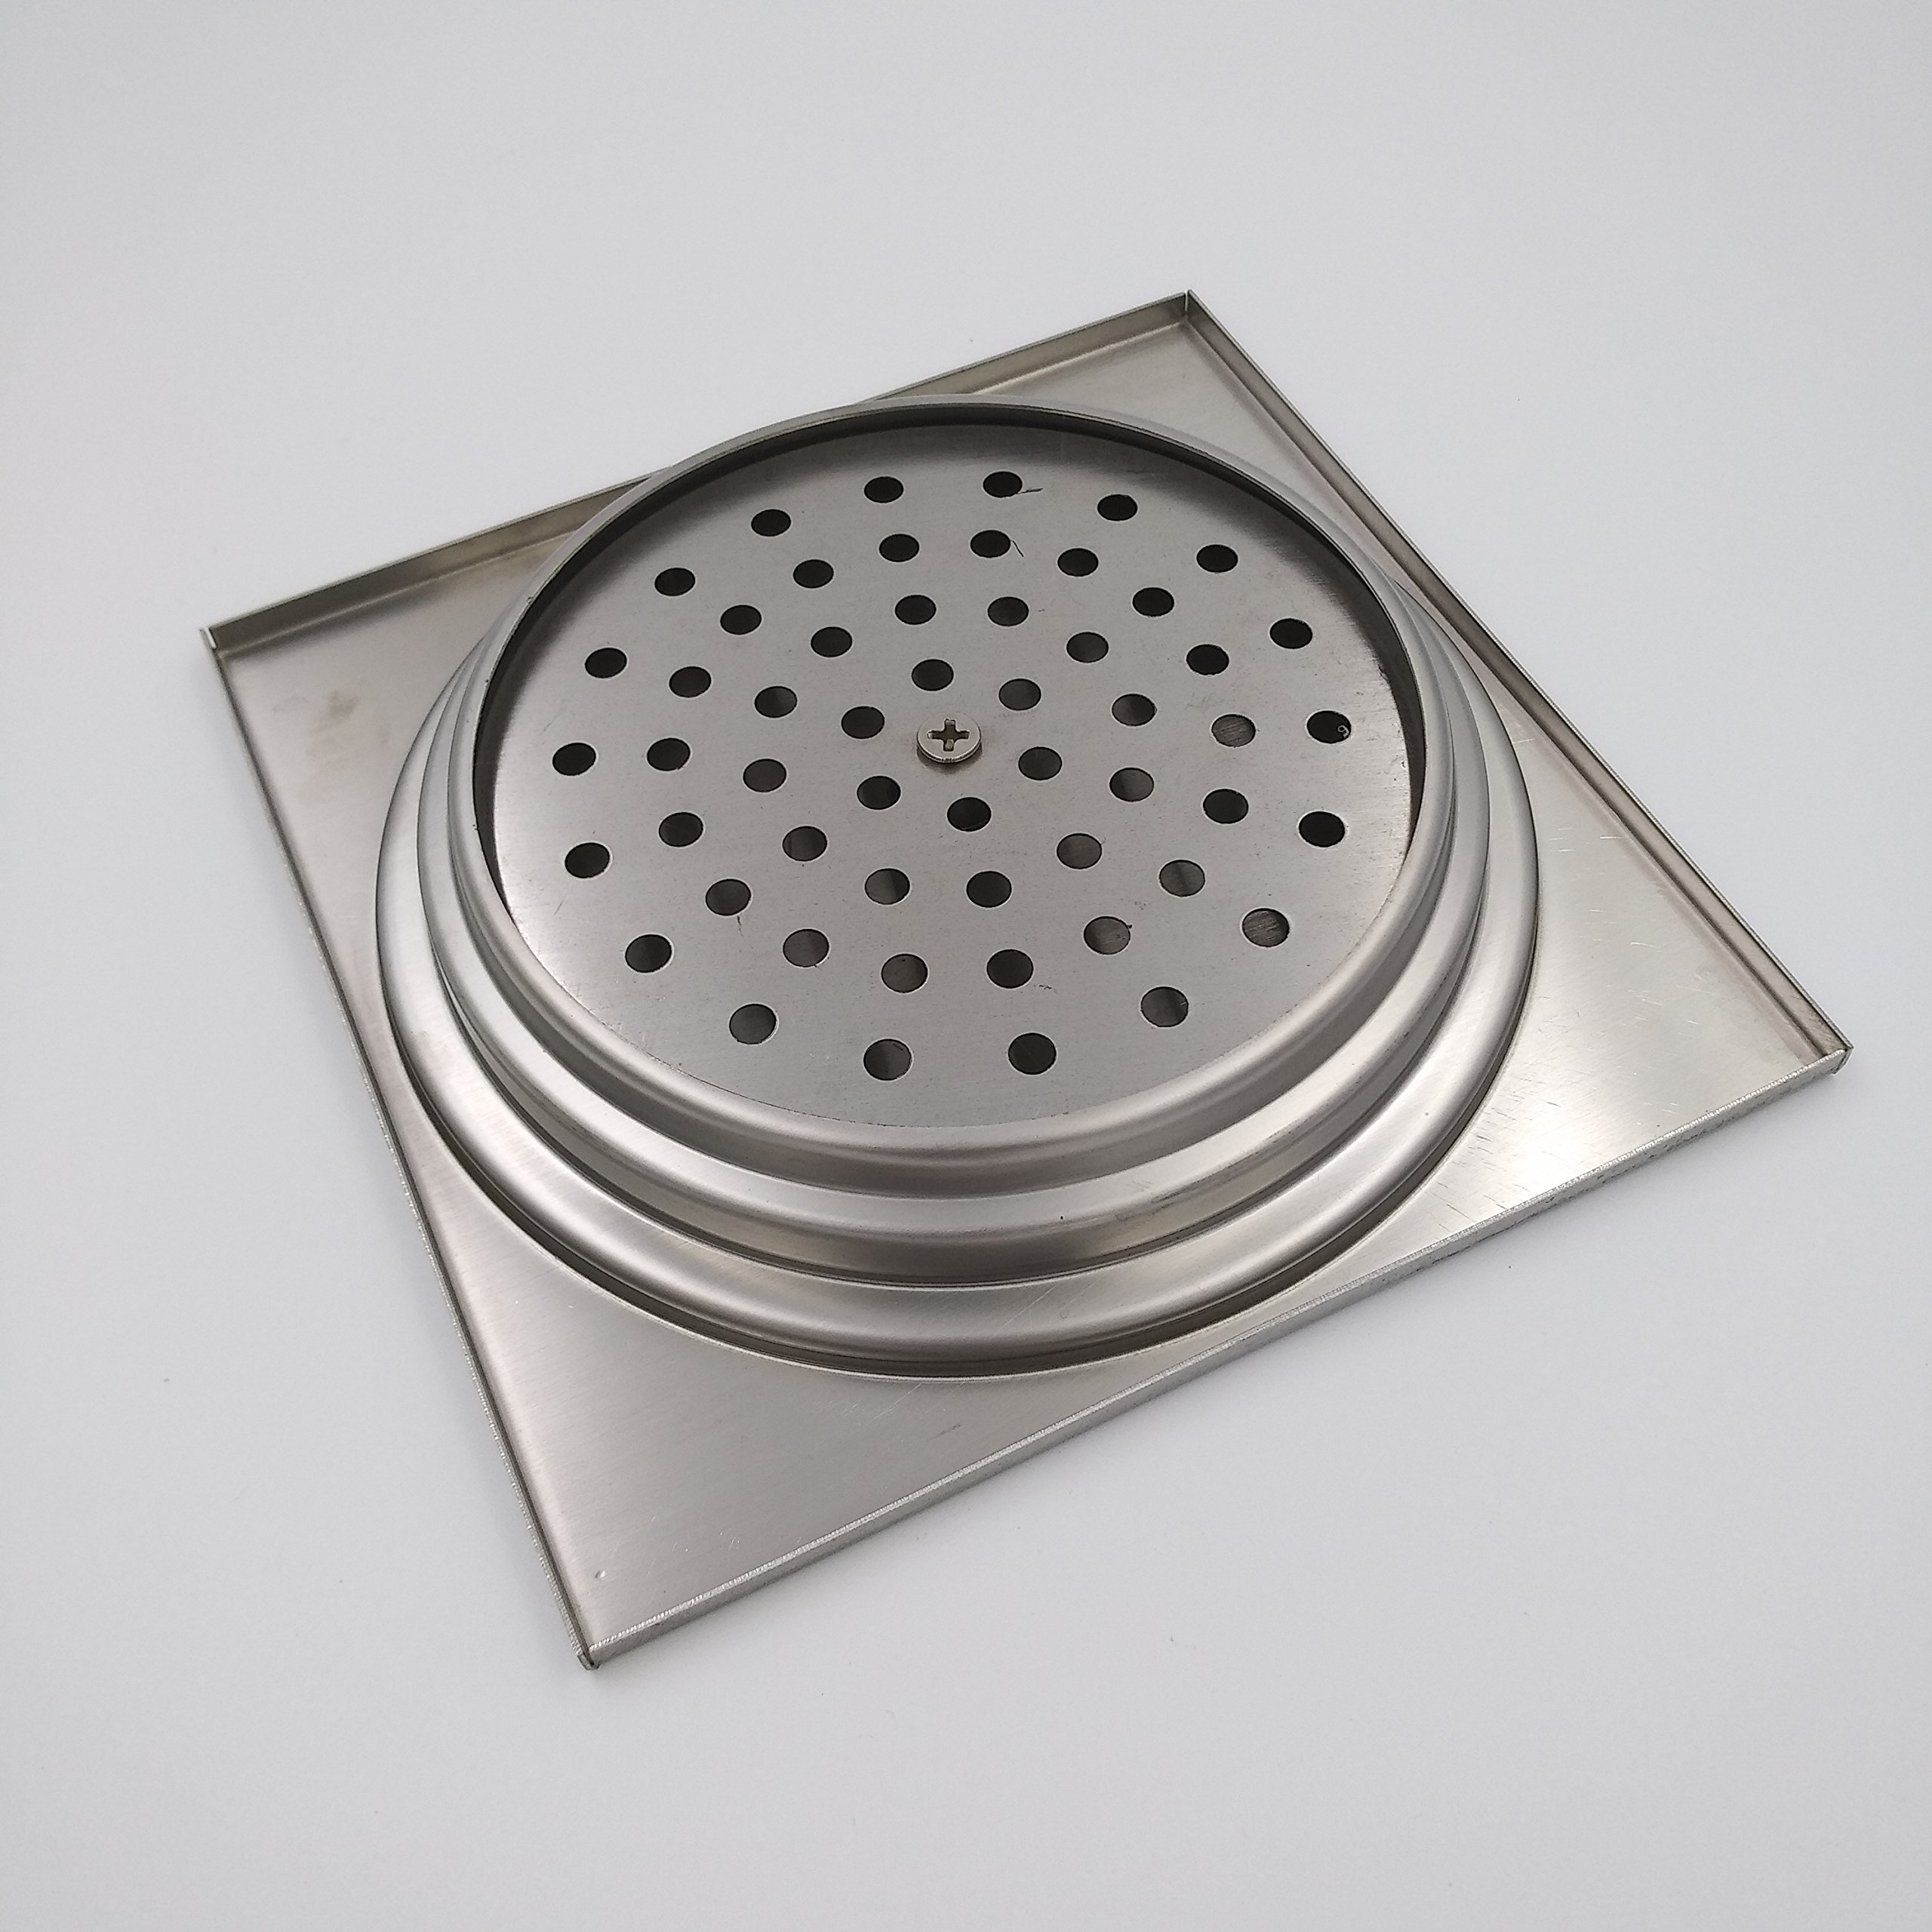 ULING D016-2 SUS304 Stainless Steel Bathroom Shower Floor Drain Square Bath Room Toilet Washing Machine Drain Remove Cover Waste Drain Home Sets by ULING